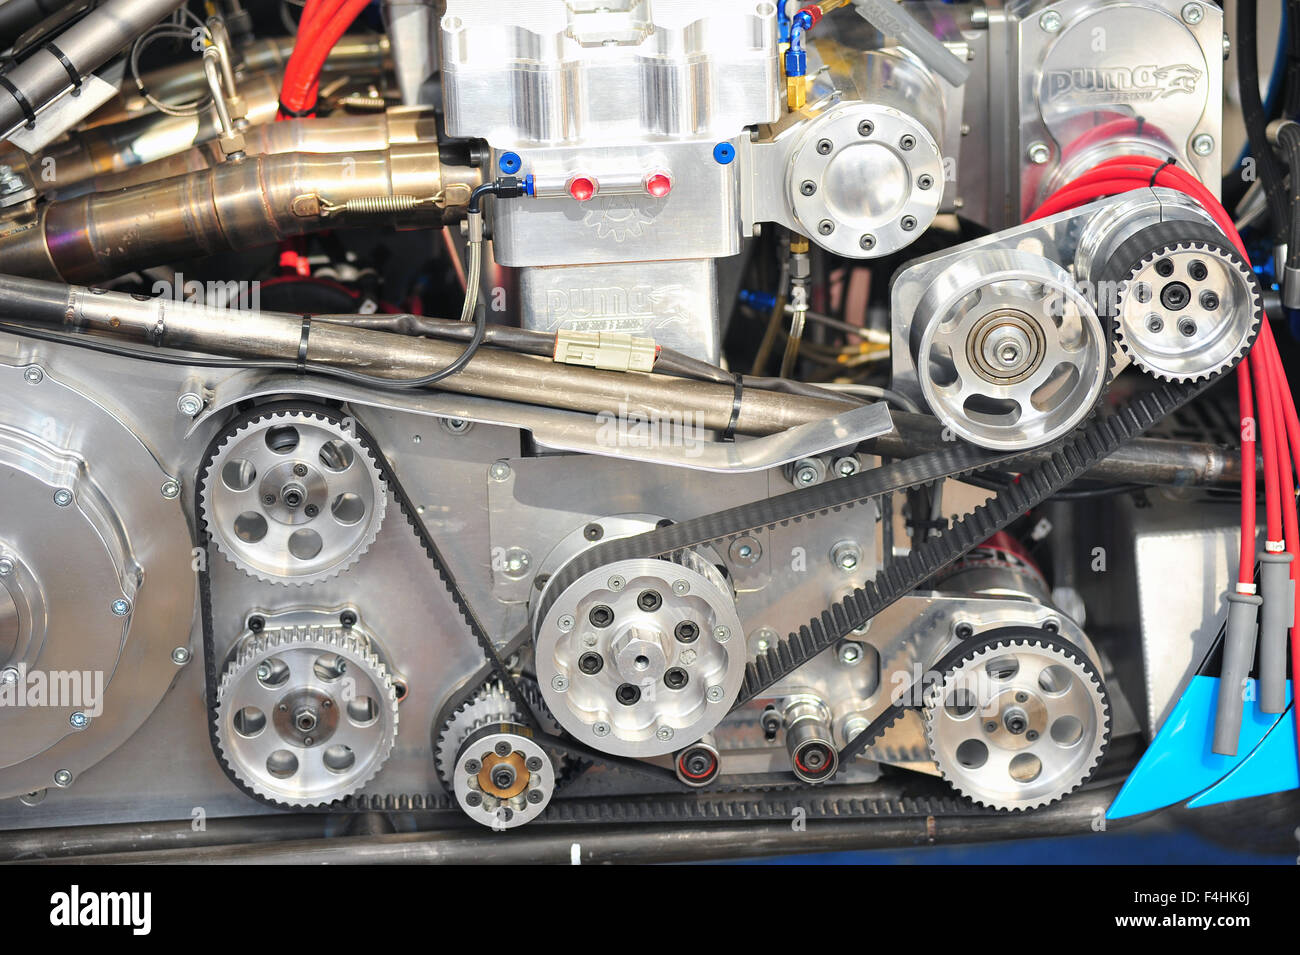 The auxiliary belts and wheels on the side of a racing engine at the Goodwood Festival of Speed. - Stock Image